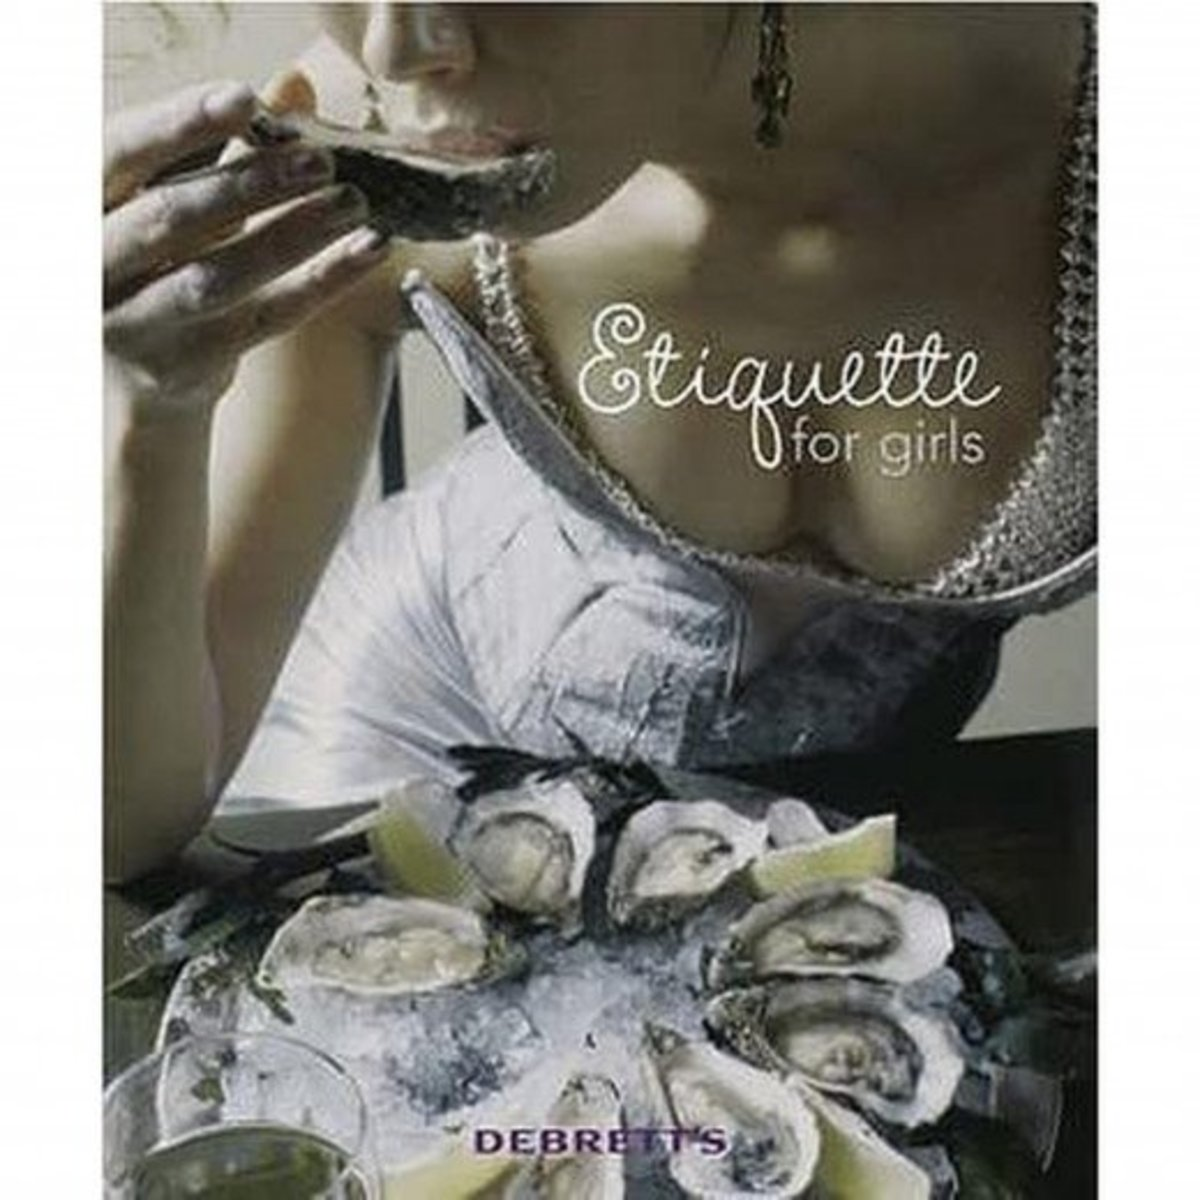 review-fleur-britten-writes-on-a-topical-subject-for-young-girls-in-debretts-etiquette-for-girls